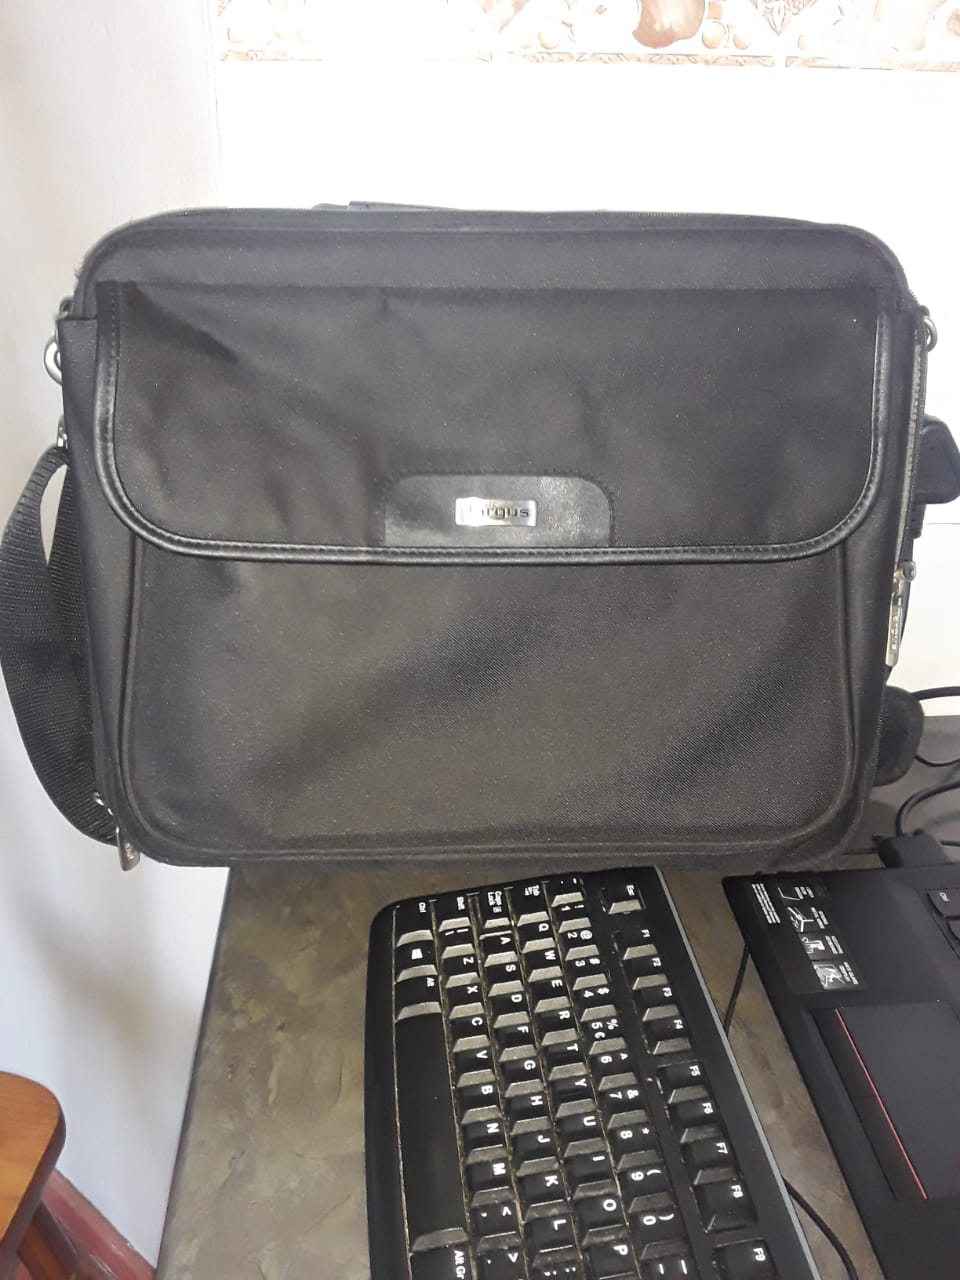 Lenovo laptop with accessories